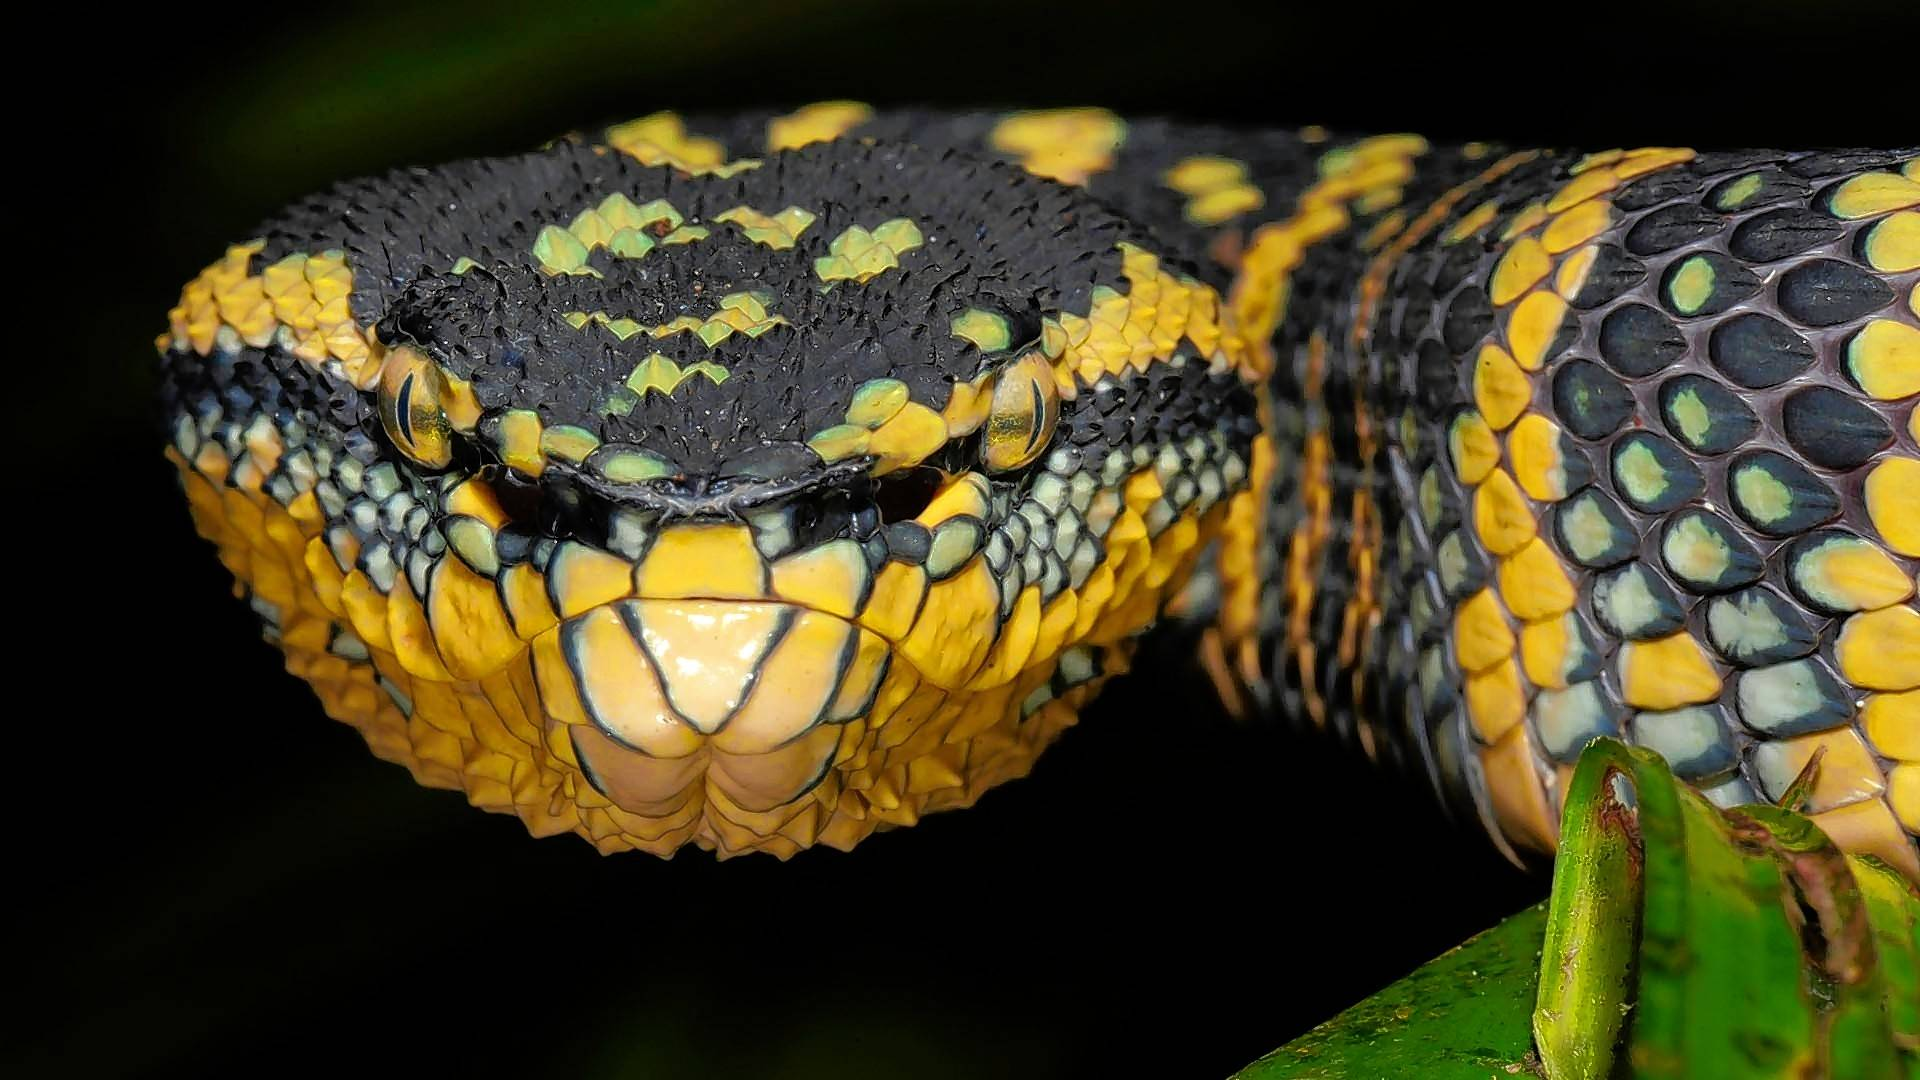 Snake venom could provide the blueprint for a new drug to prevent blood clots.